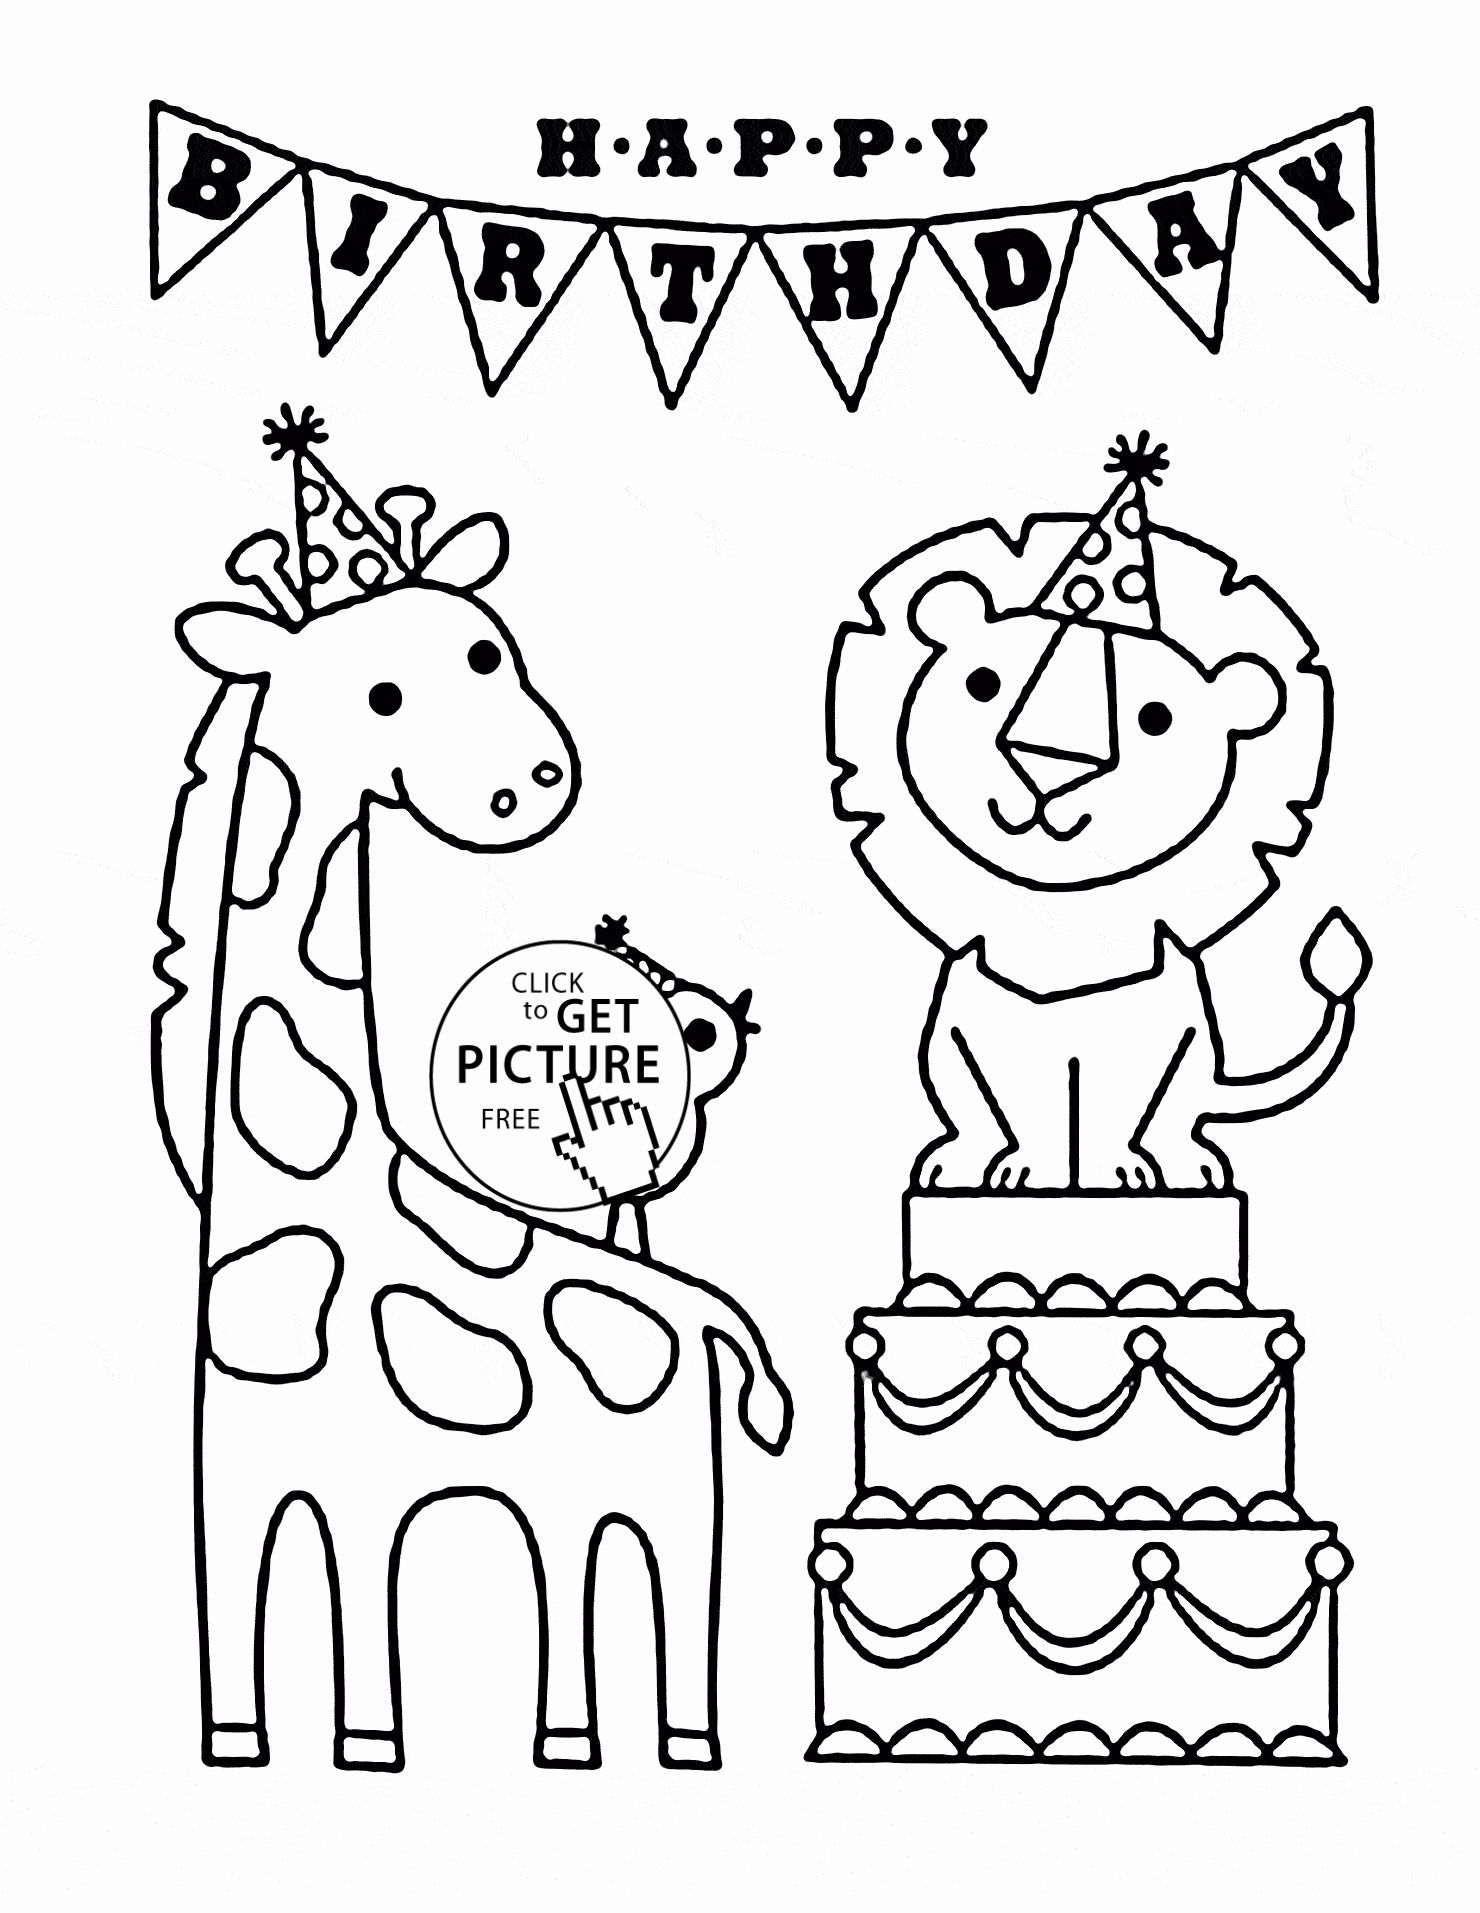 Holiday Coloring Books For Adults Awesome Happy Birthday And Funny Animals Coloring Page F Happy Birthday Coloring Pages Birthday Coloring Pages Coloring Books